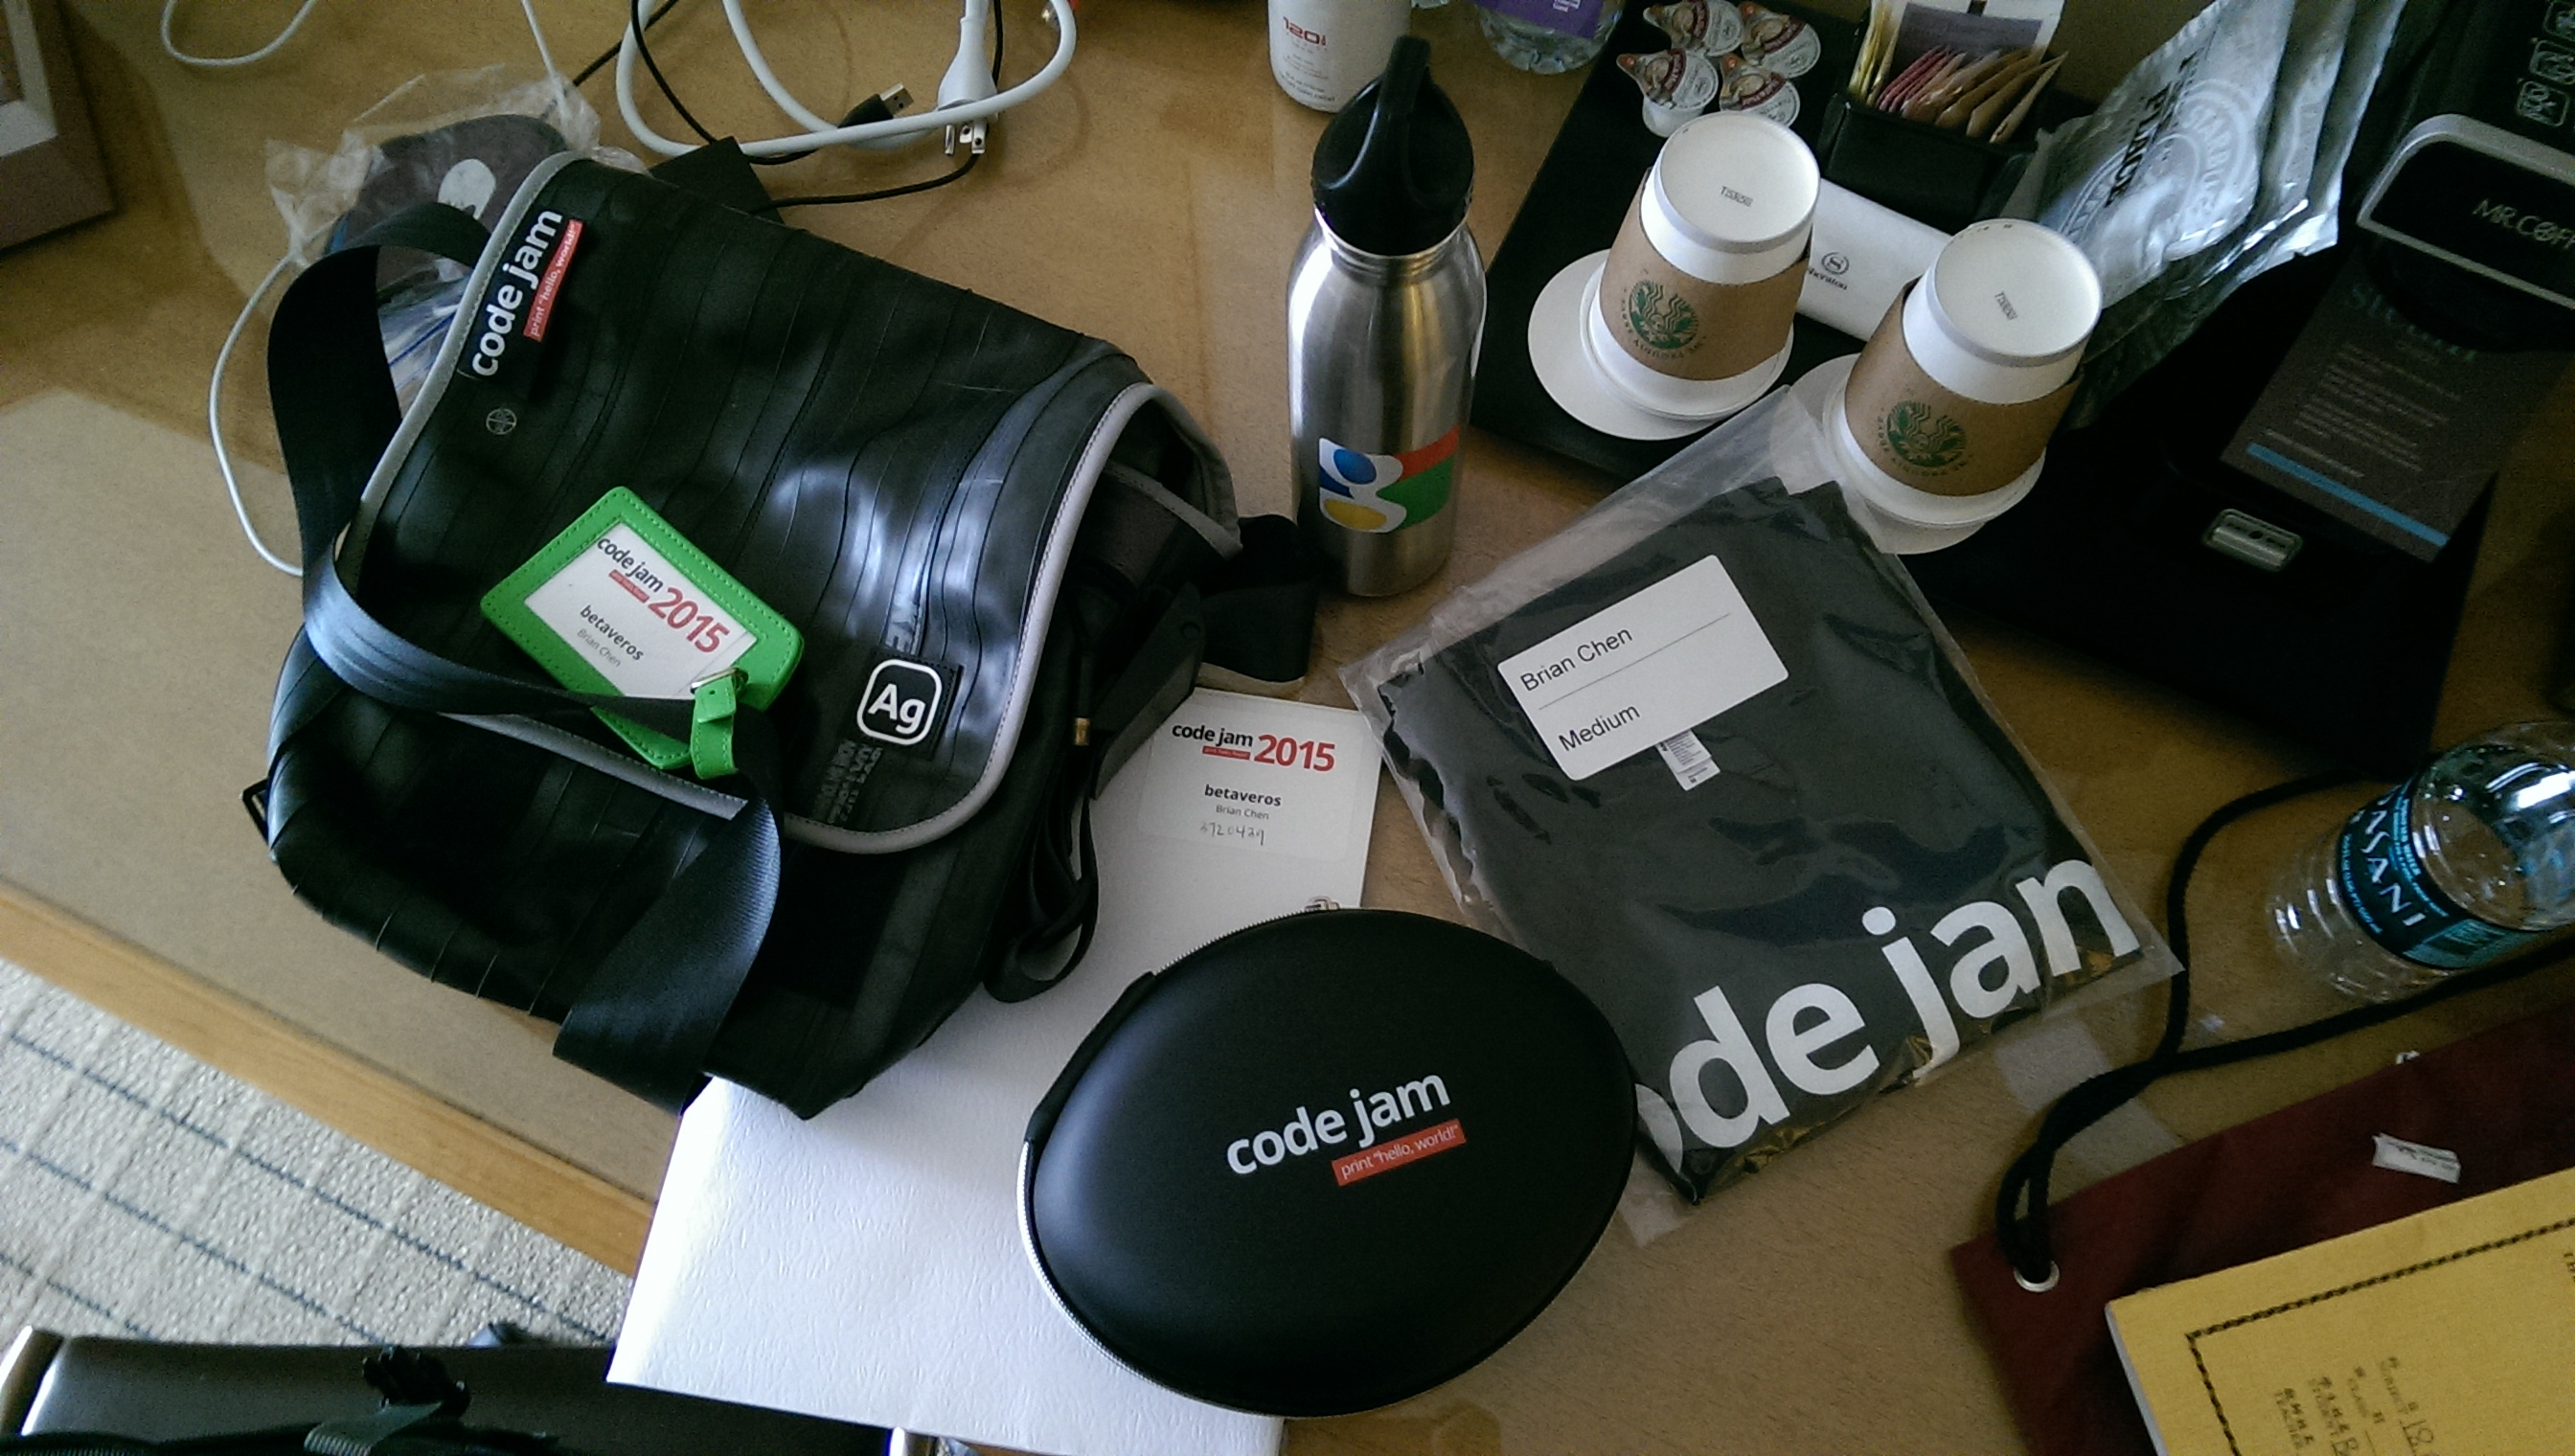 [Assorted goods from Google goodie bag]